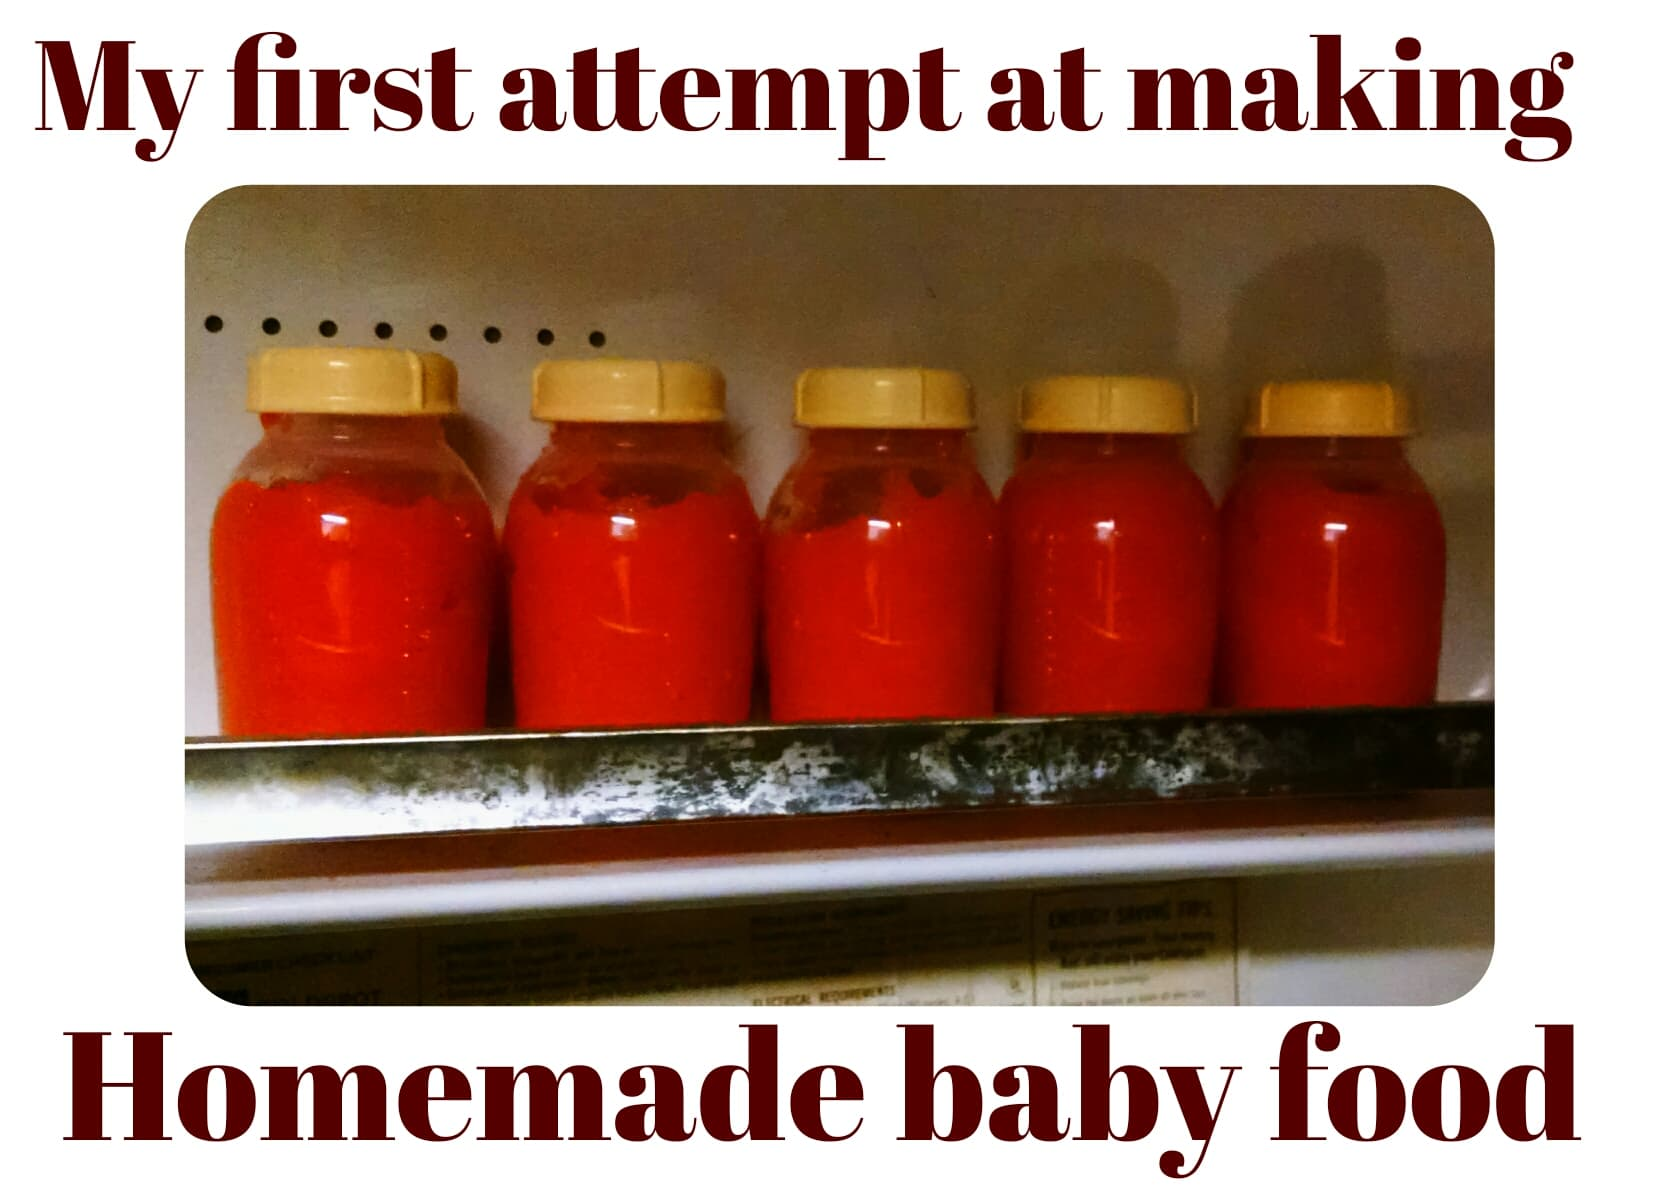 Making homemade baby food, my first attempt and some tips I learned